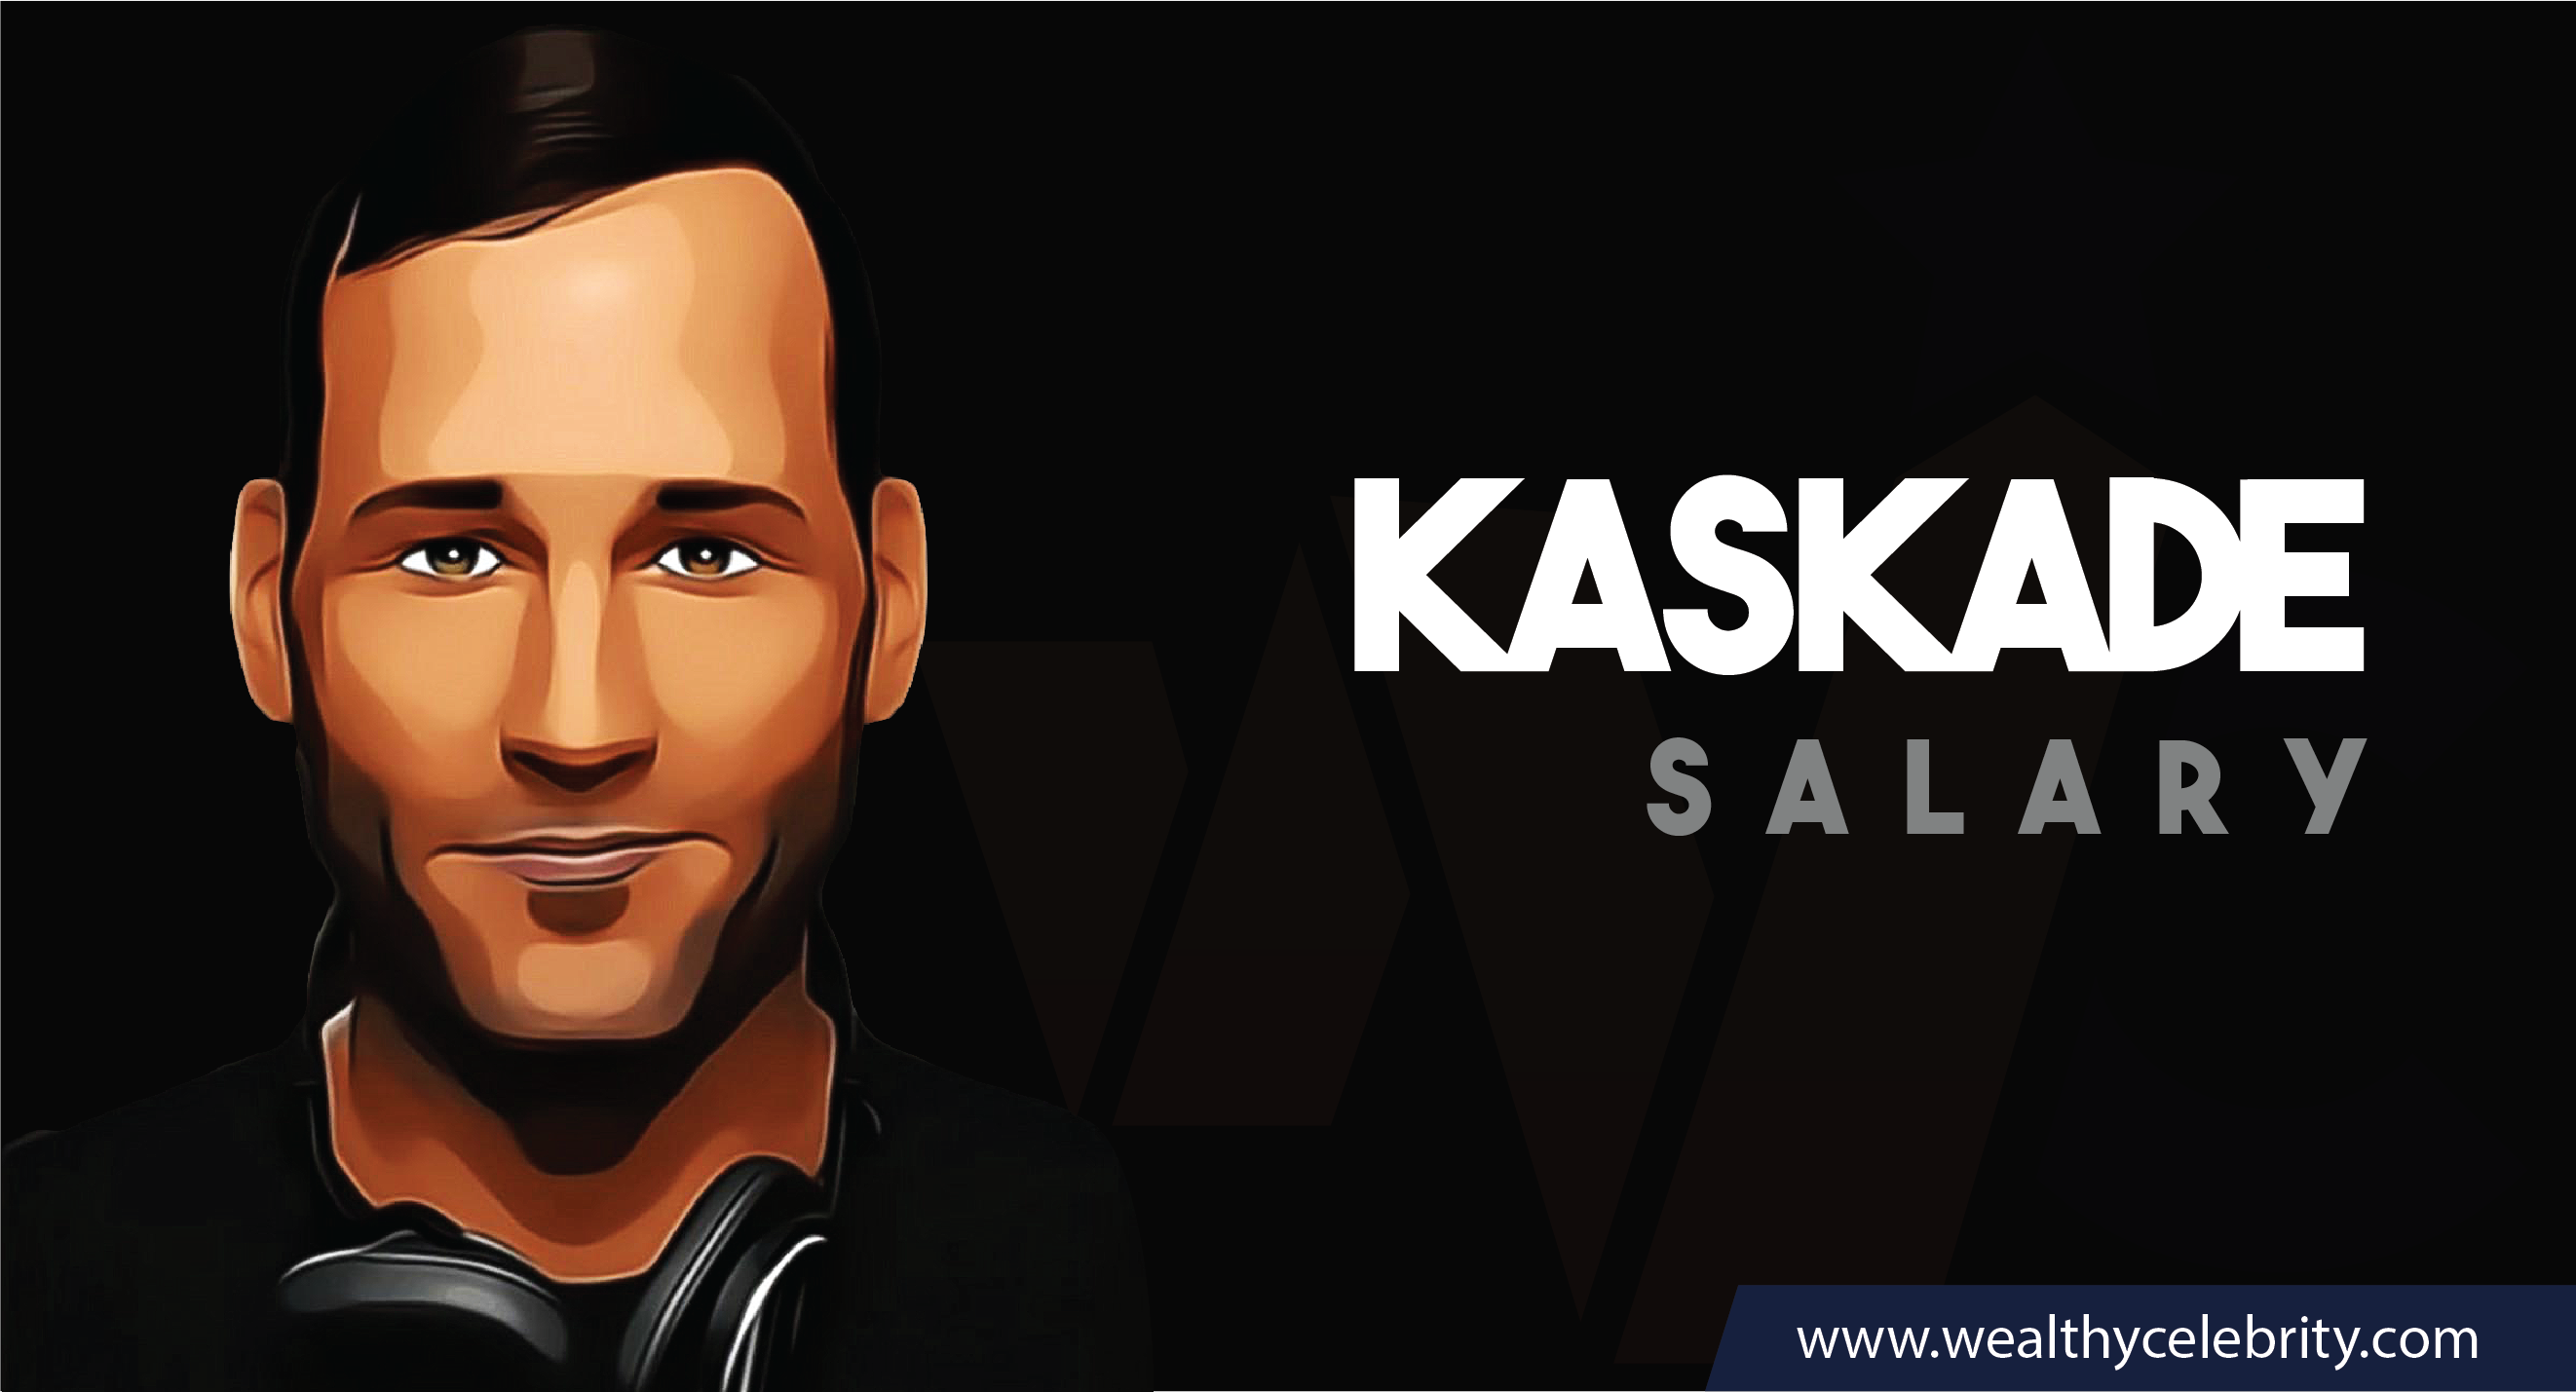 Kaskade DJ - Current Salary Net Worth